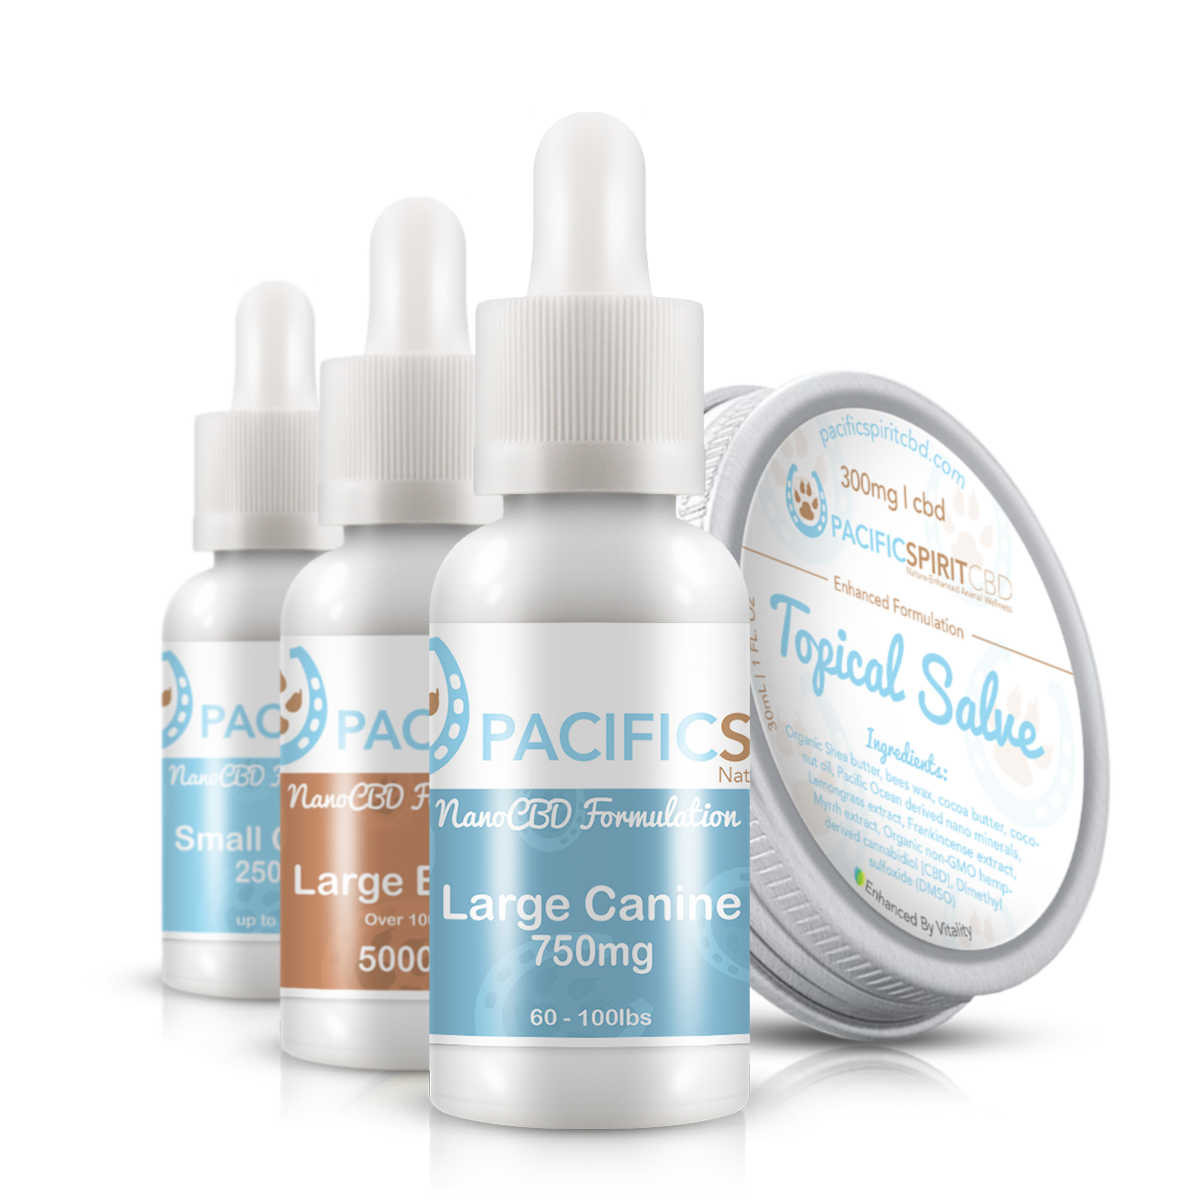 Paciific Spirit CBD for pets